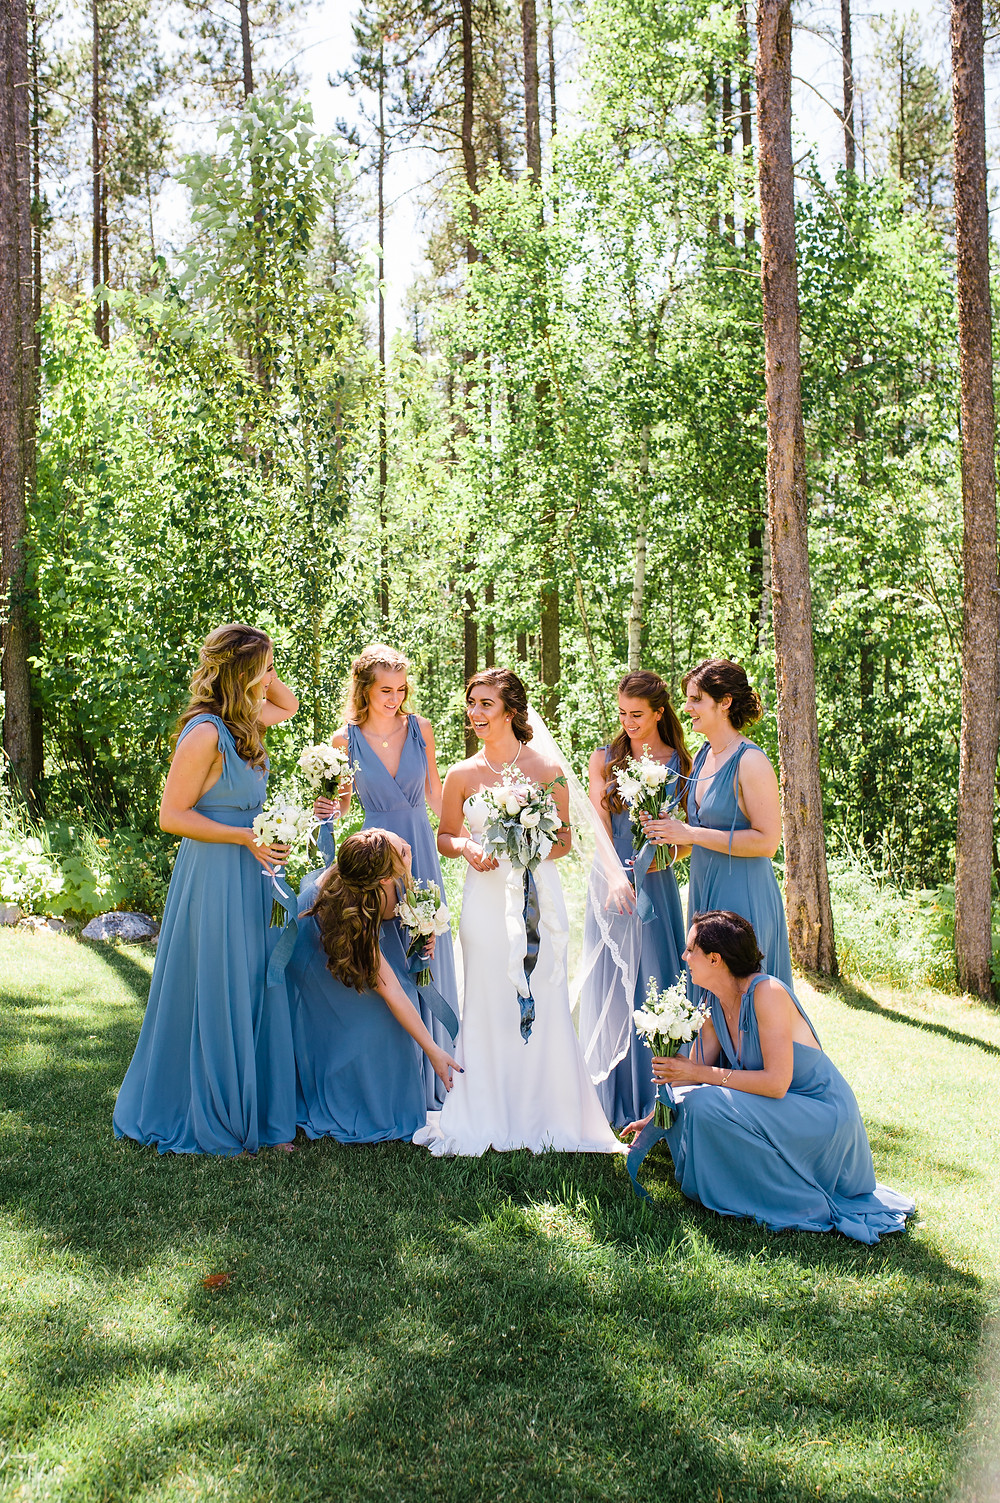 wedding photography tips for brides, get the best bridesmaids photos